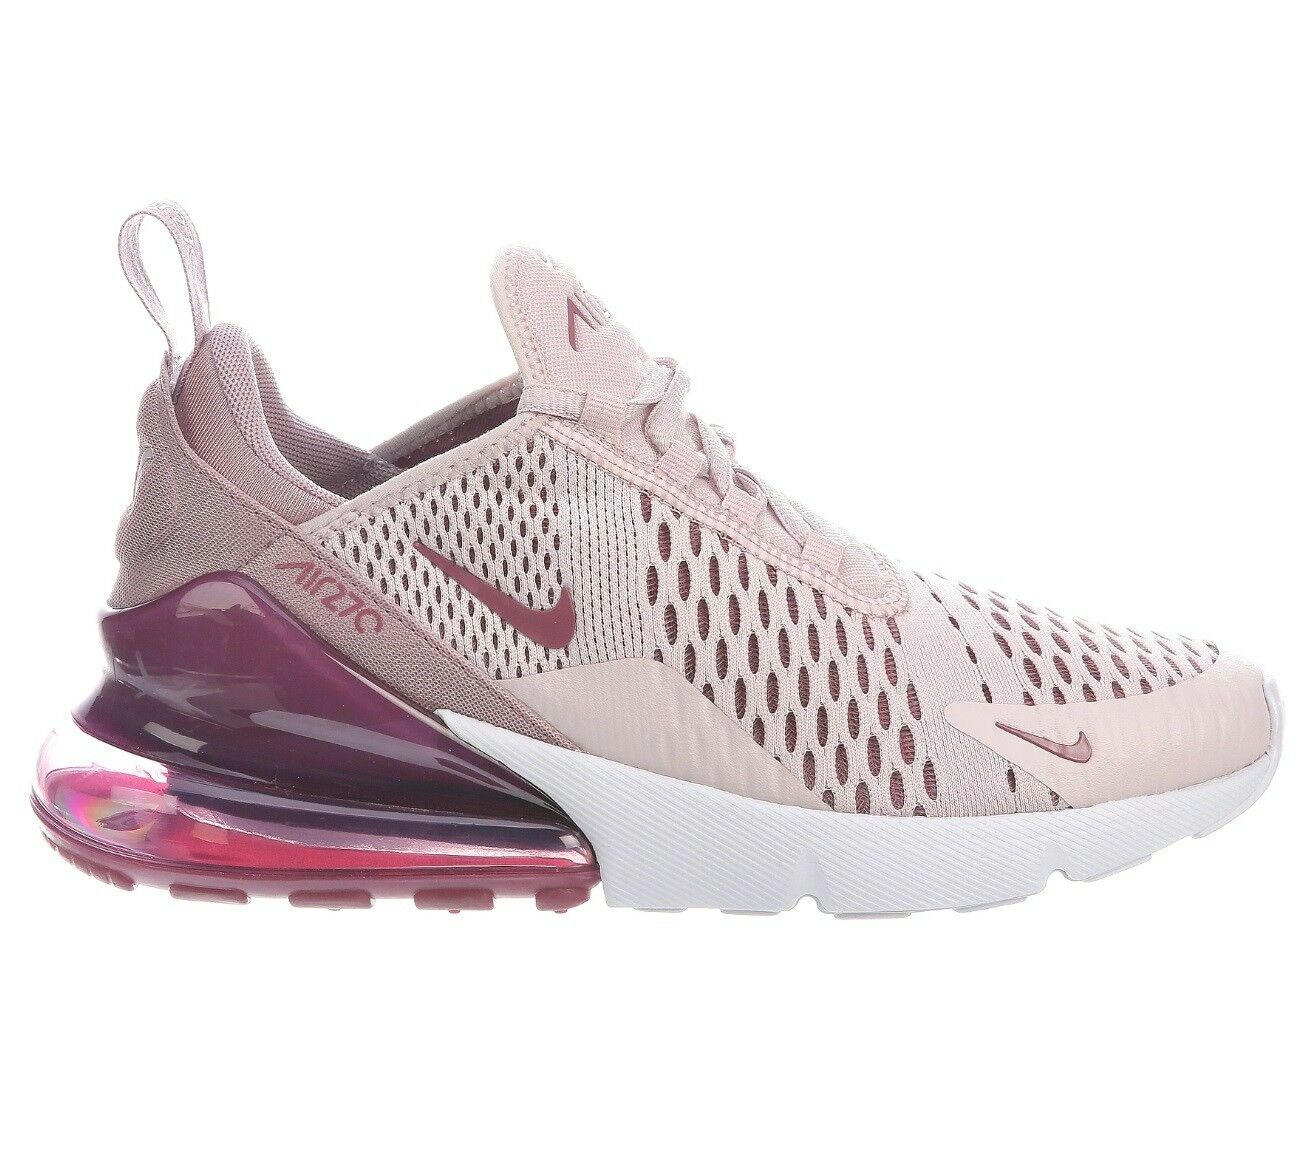 Nike Air Max 270 Womens AH6789-601 Barely Rose Pink Wine Running Shoes Size 6.5